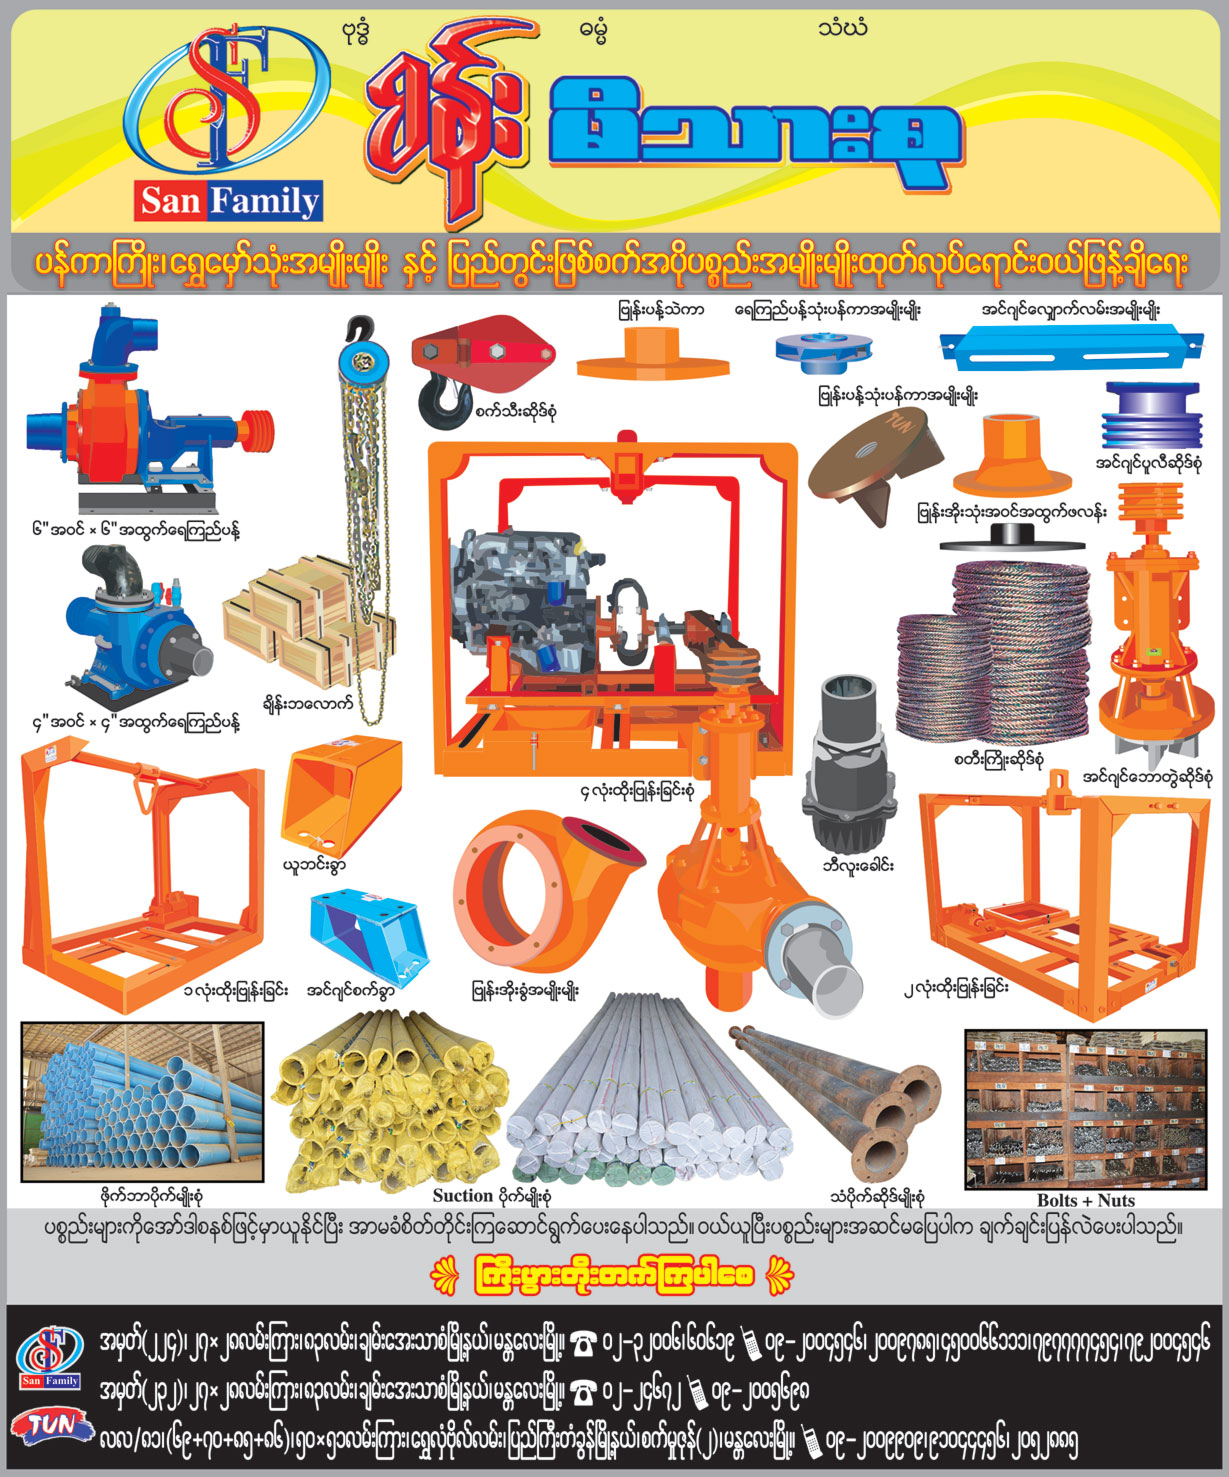 San FamilyMachinery & Spare Parts Dealers